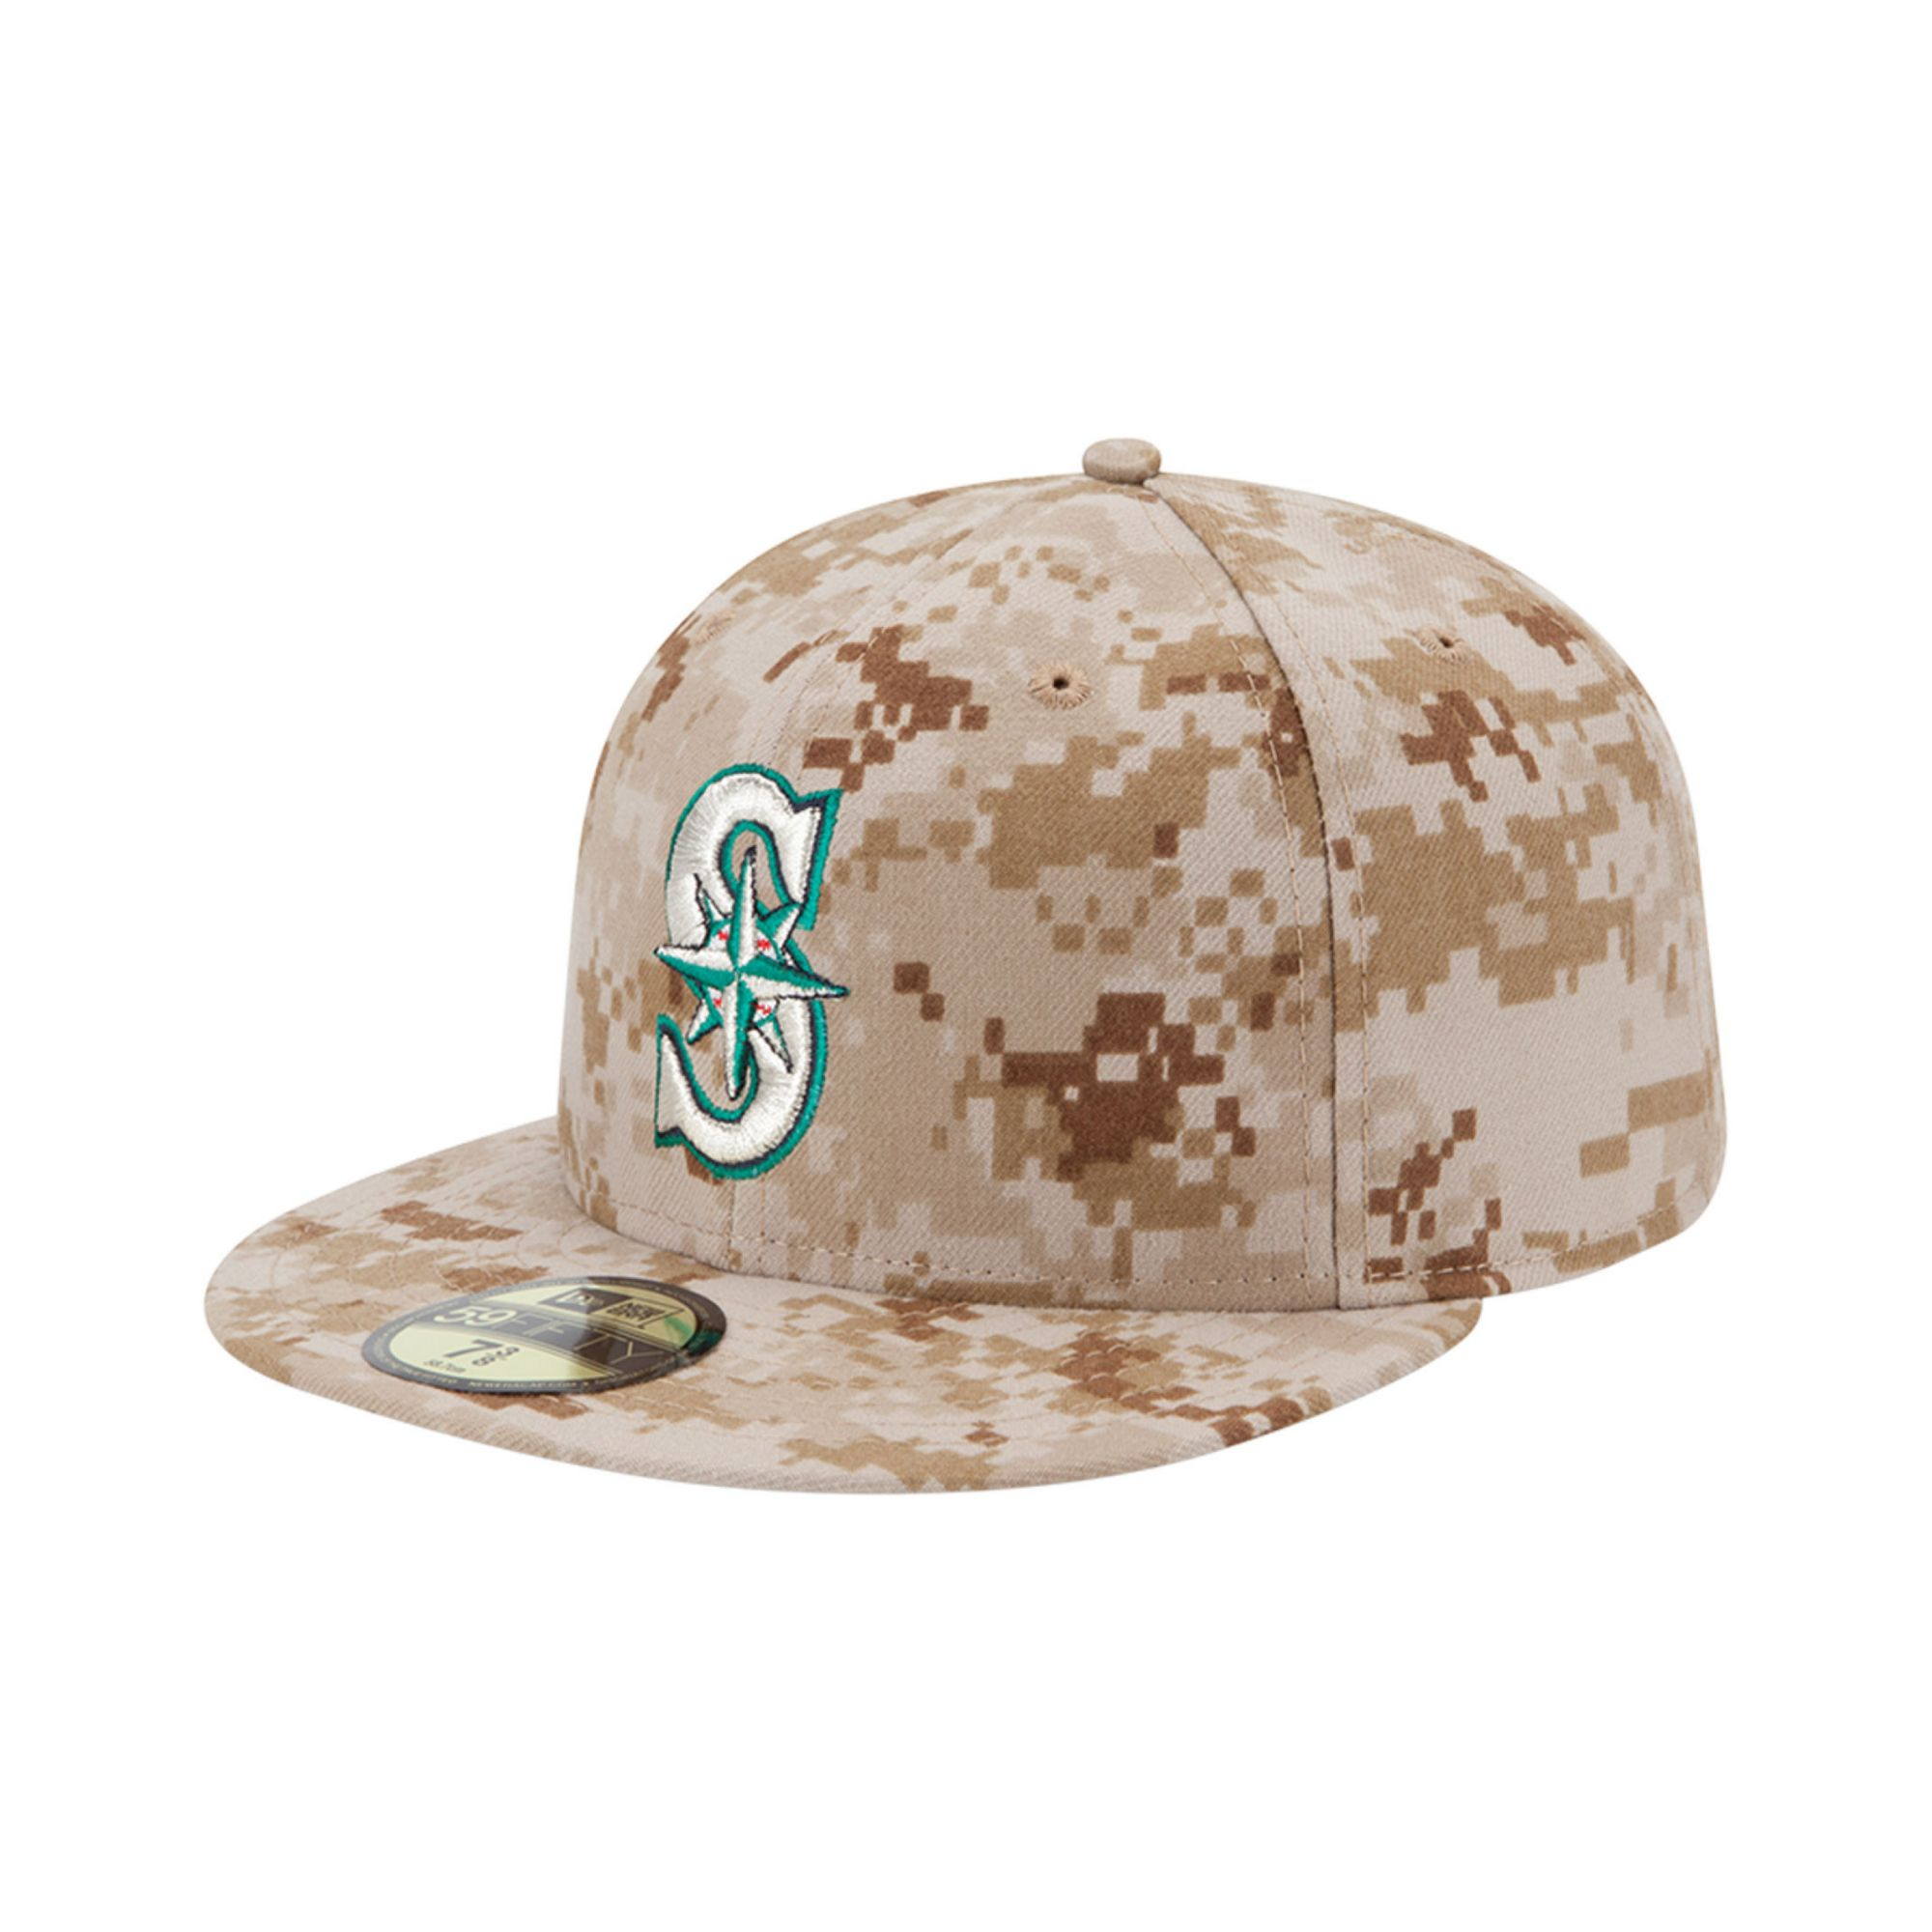 check out ce1a6 104a5 ... get lyst ktz seattle mariners mlb memorial day stars stripes 59fifty  16fea 585b2